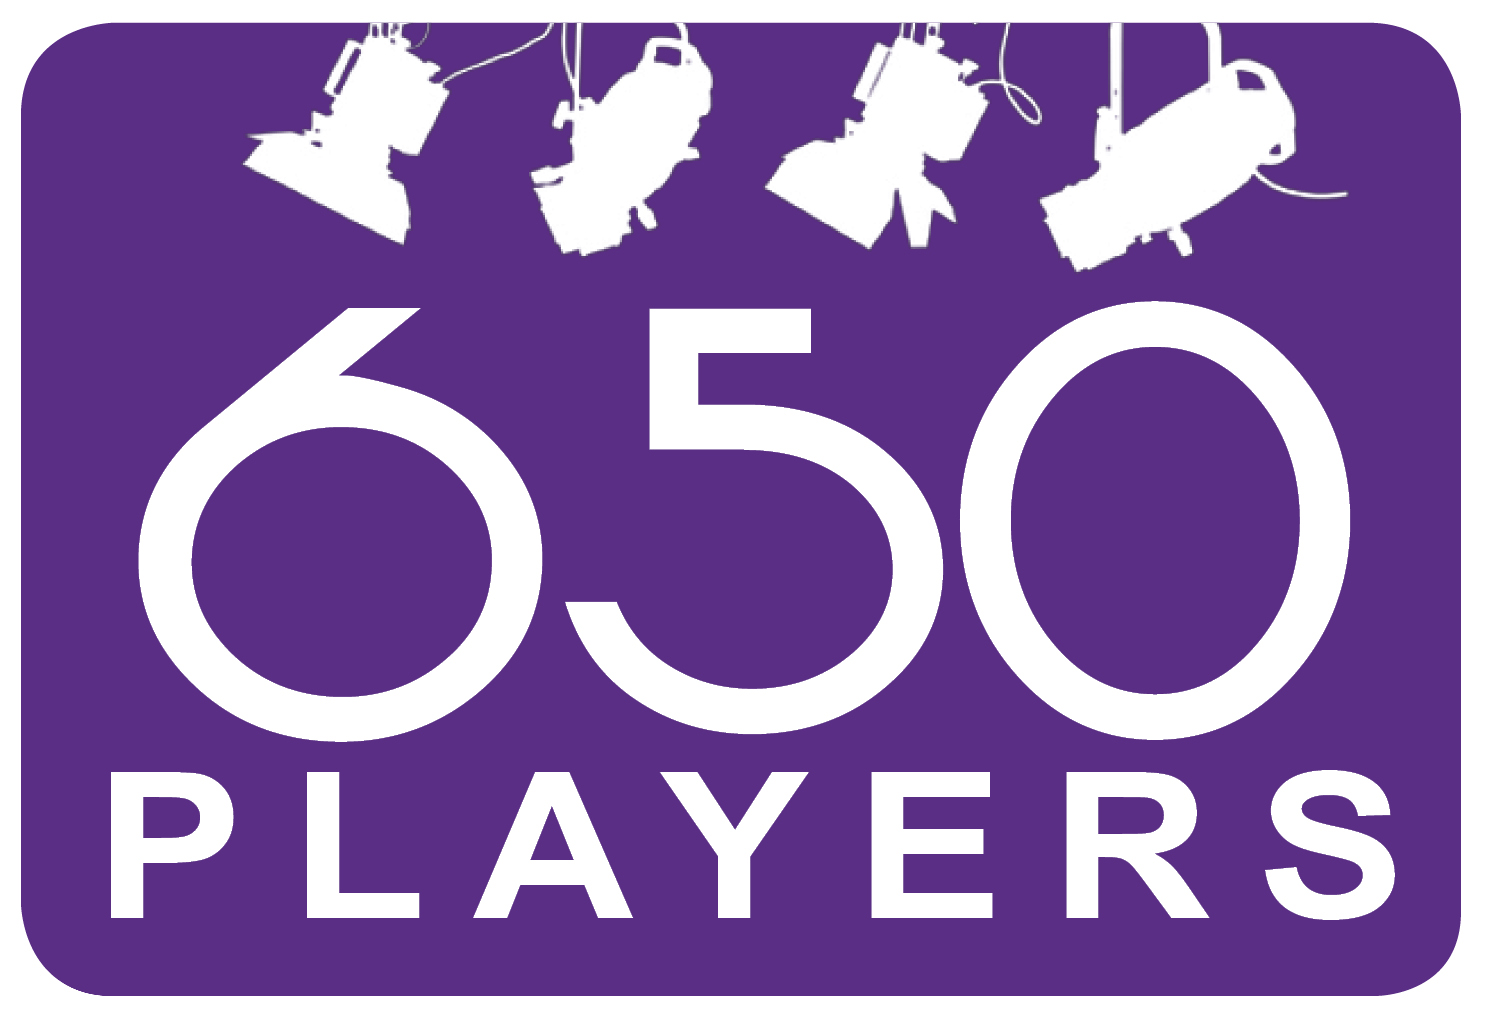 650 Players Logo 2019